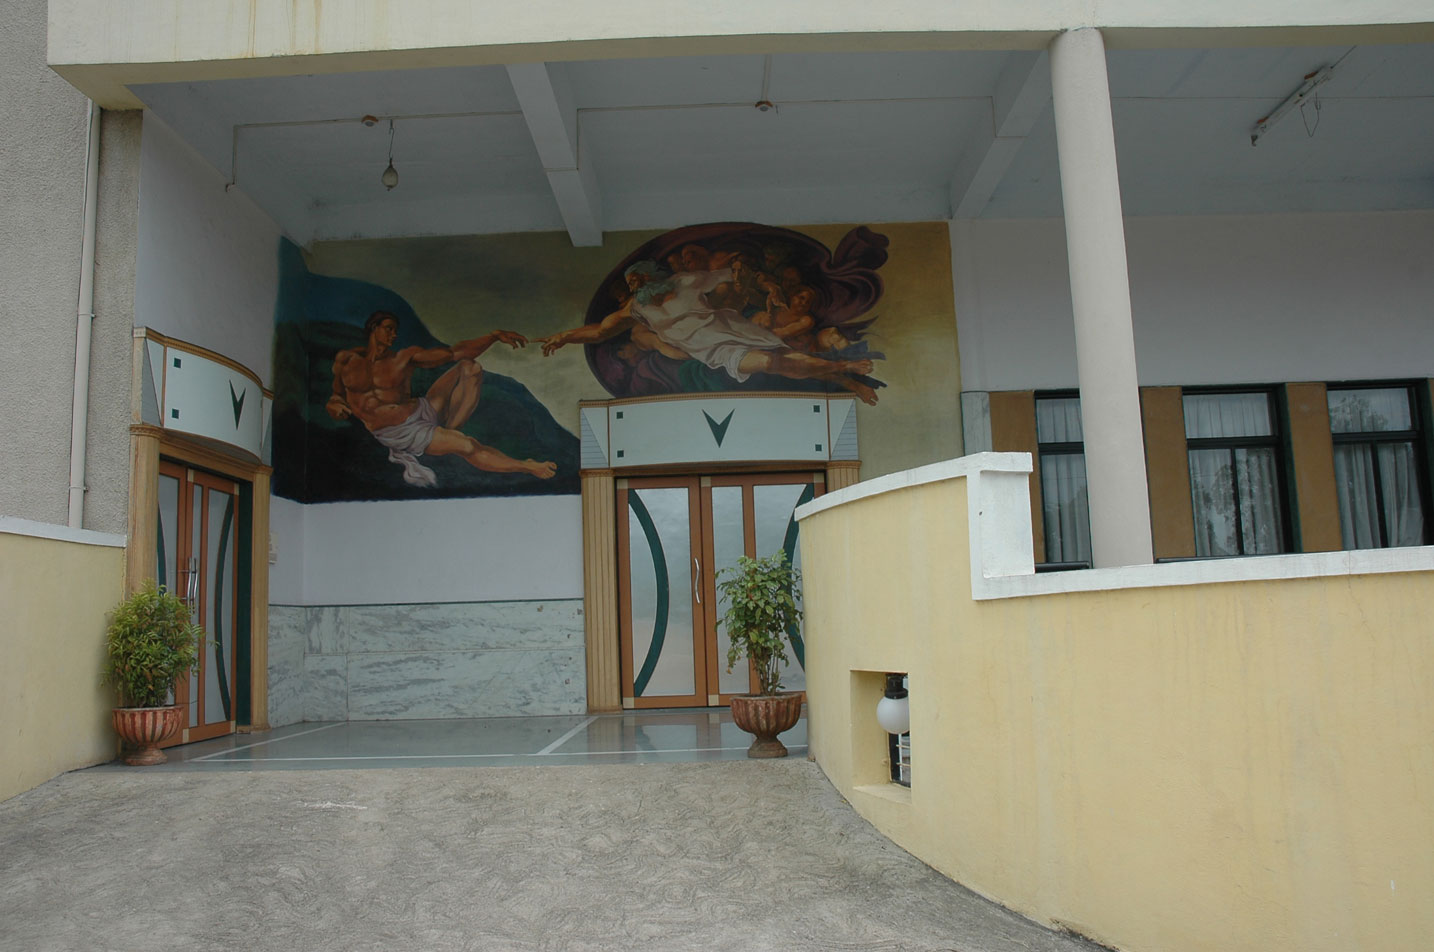 nkvs-mini-theater-and-junior-college-4